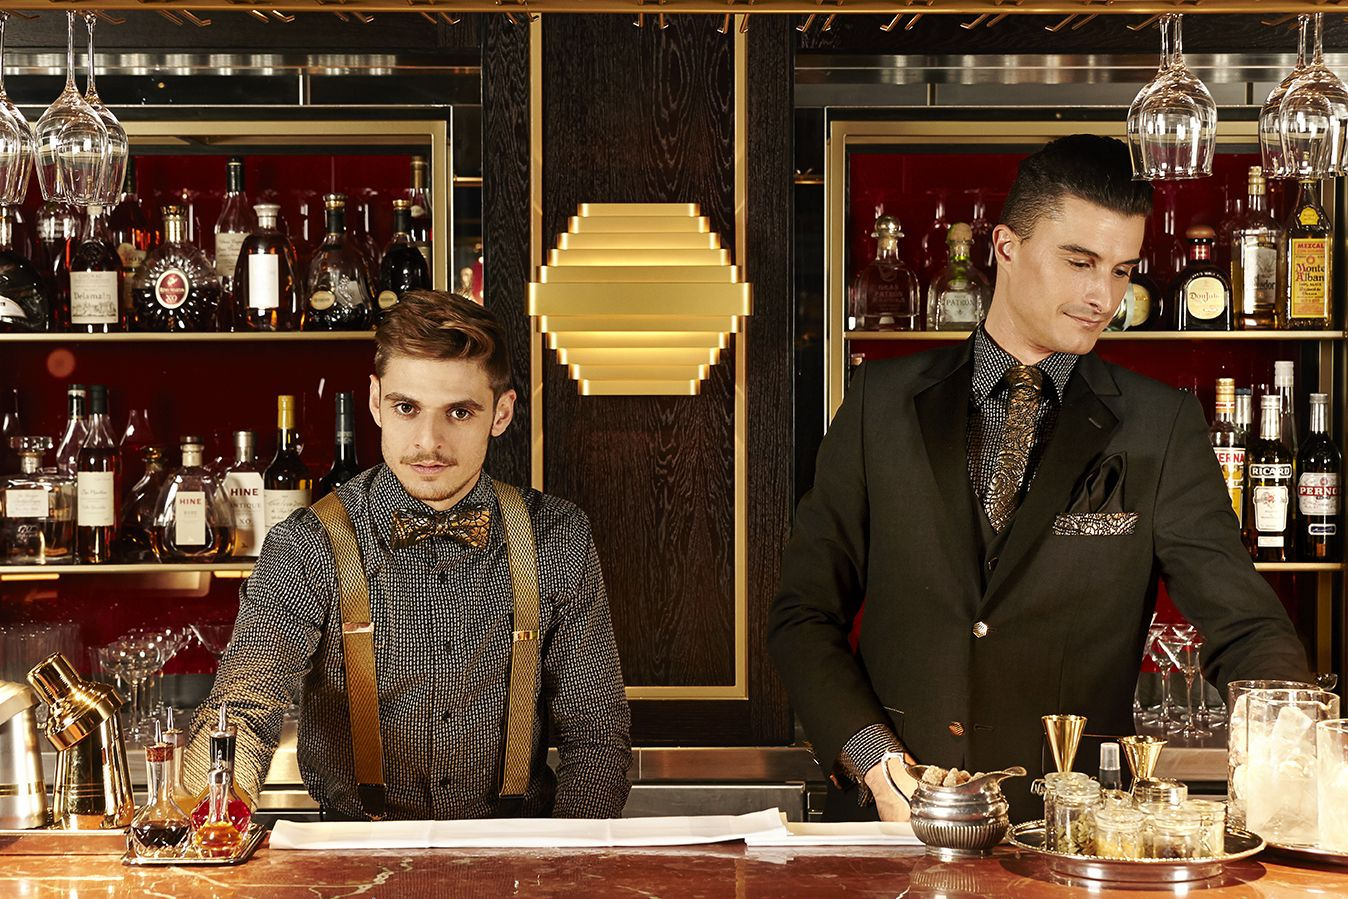 quaglino s of fair d d london pillars house uniforms the bar manager and barback in their studio 104 uniform